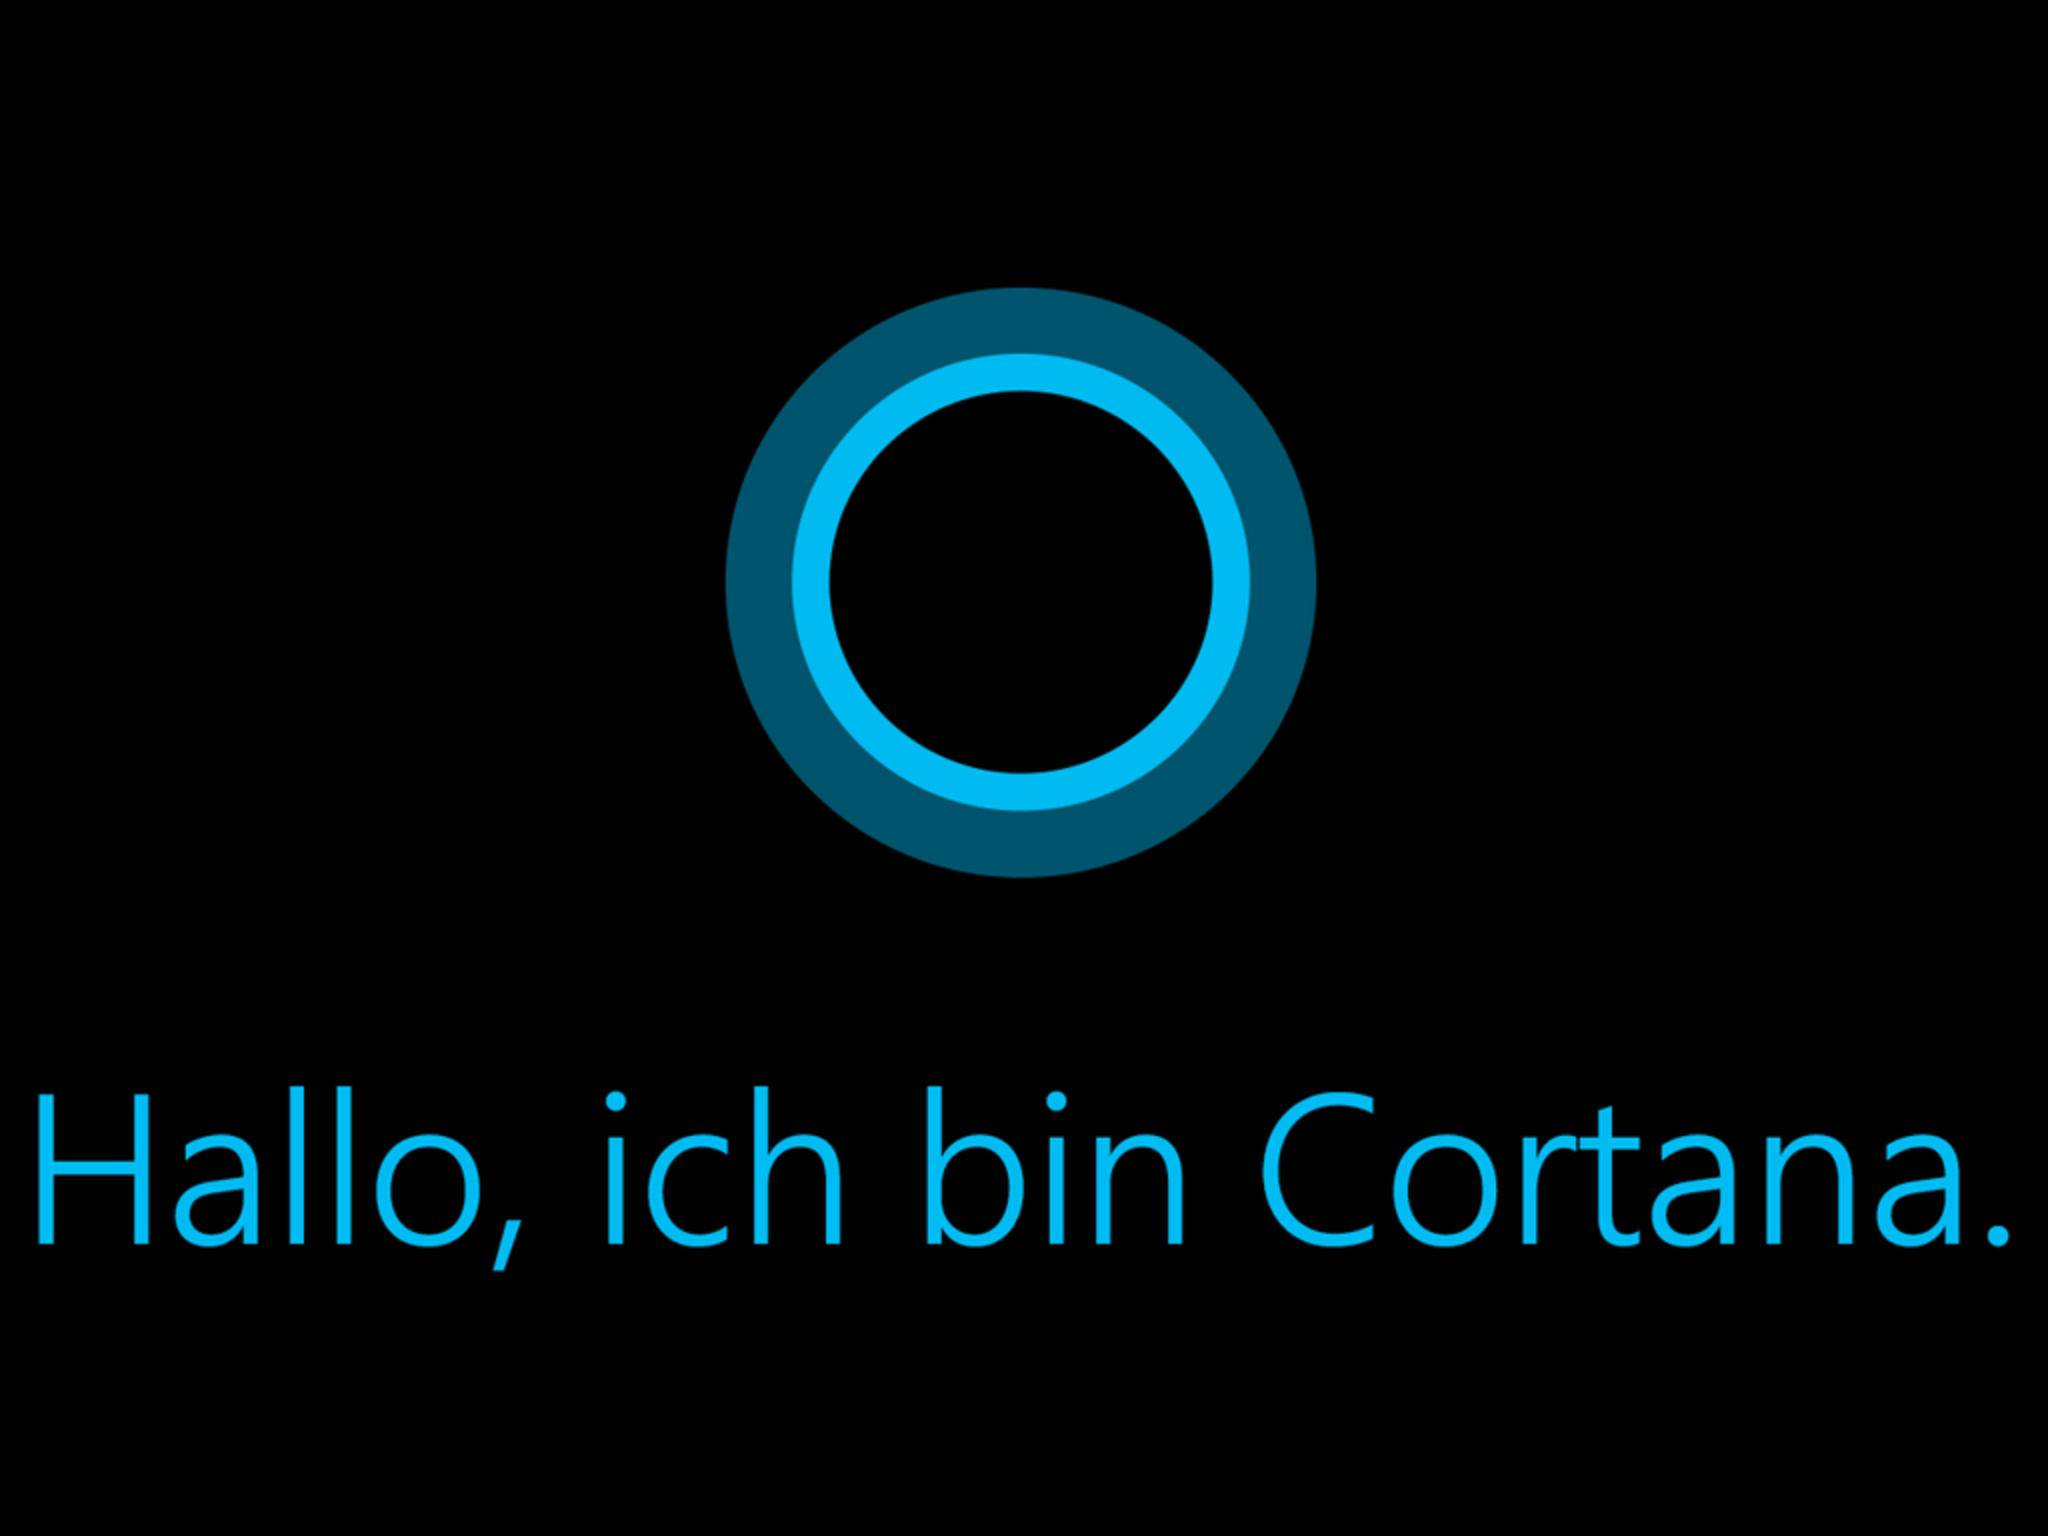 Microsofts Sprachassistentin Cortana ist in Windows 10 fest verzahnt.